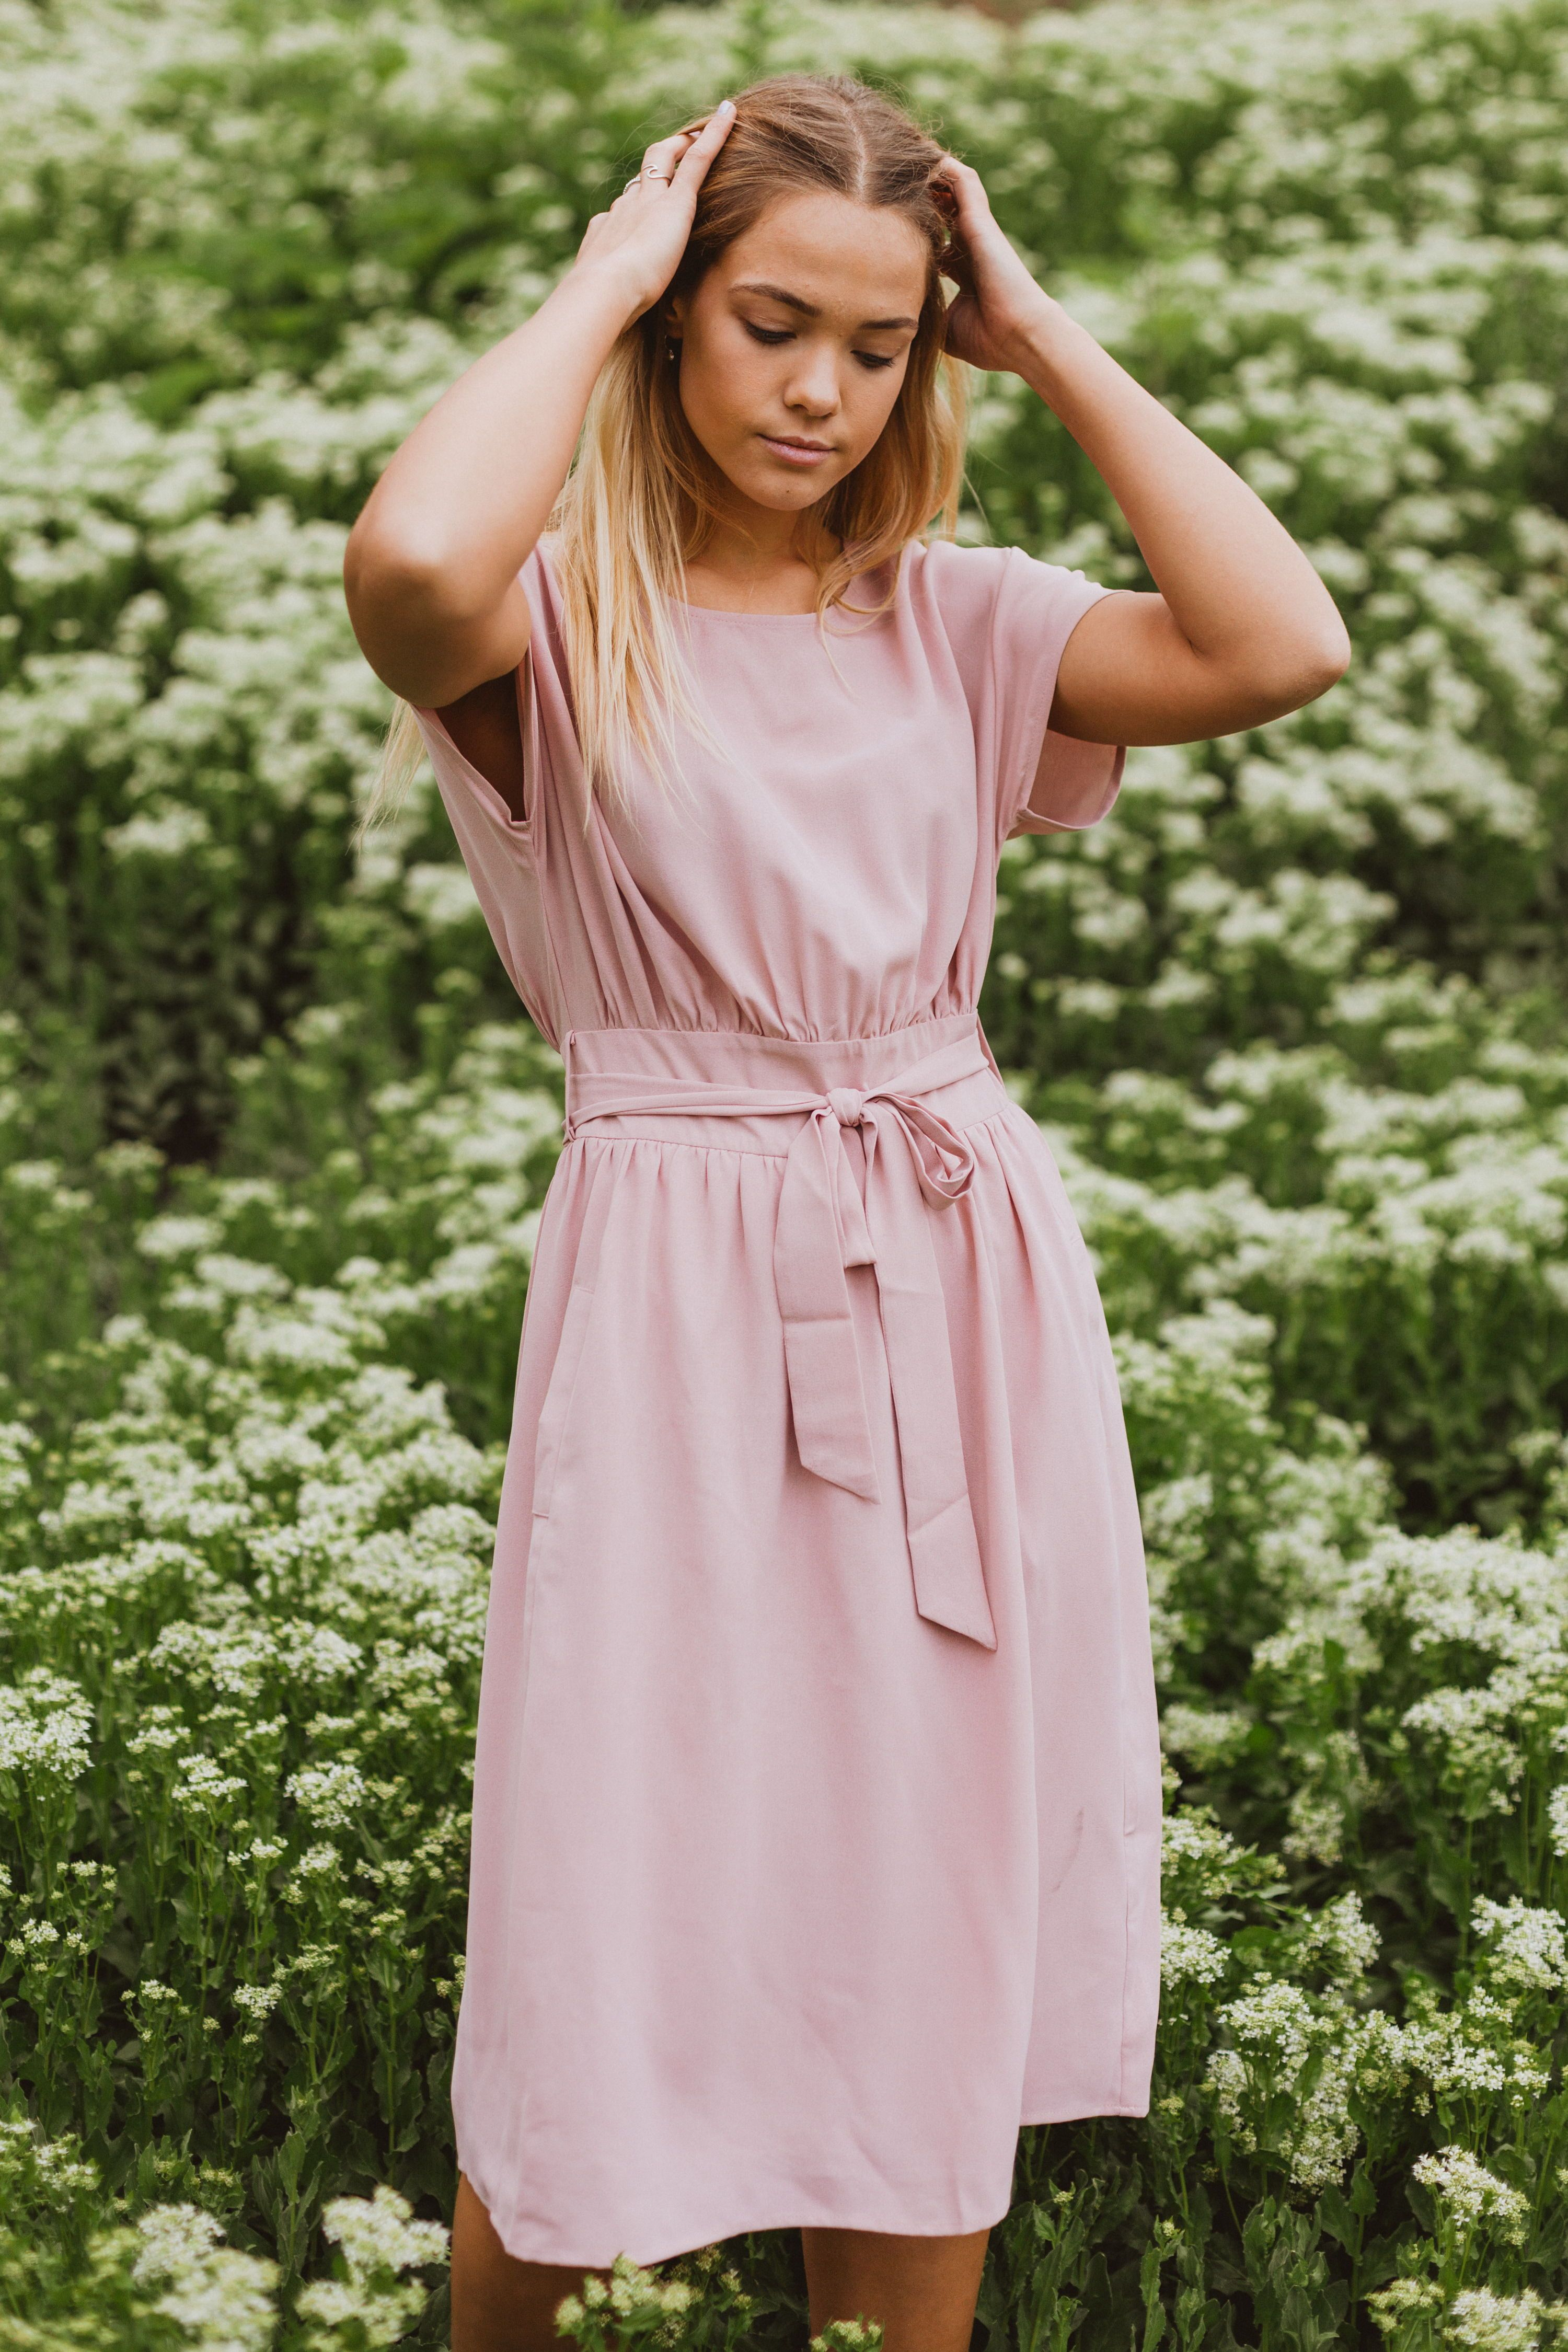 The Raymond Tie Dress Should Be A Requirement For Anyone Ever It Is A Flattering Blush Color But The Fit Makes T Blush Dress Casual Pink Dress Casual Dresses